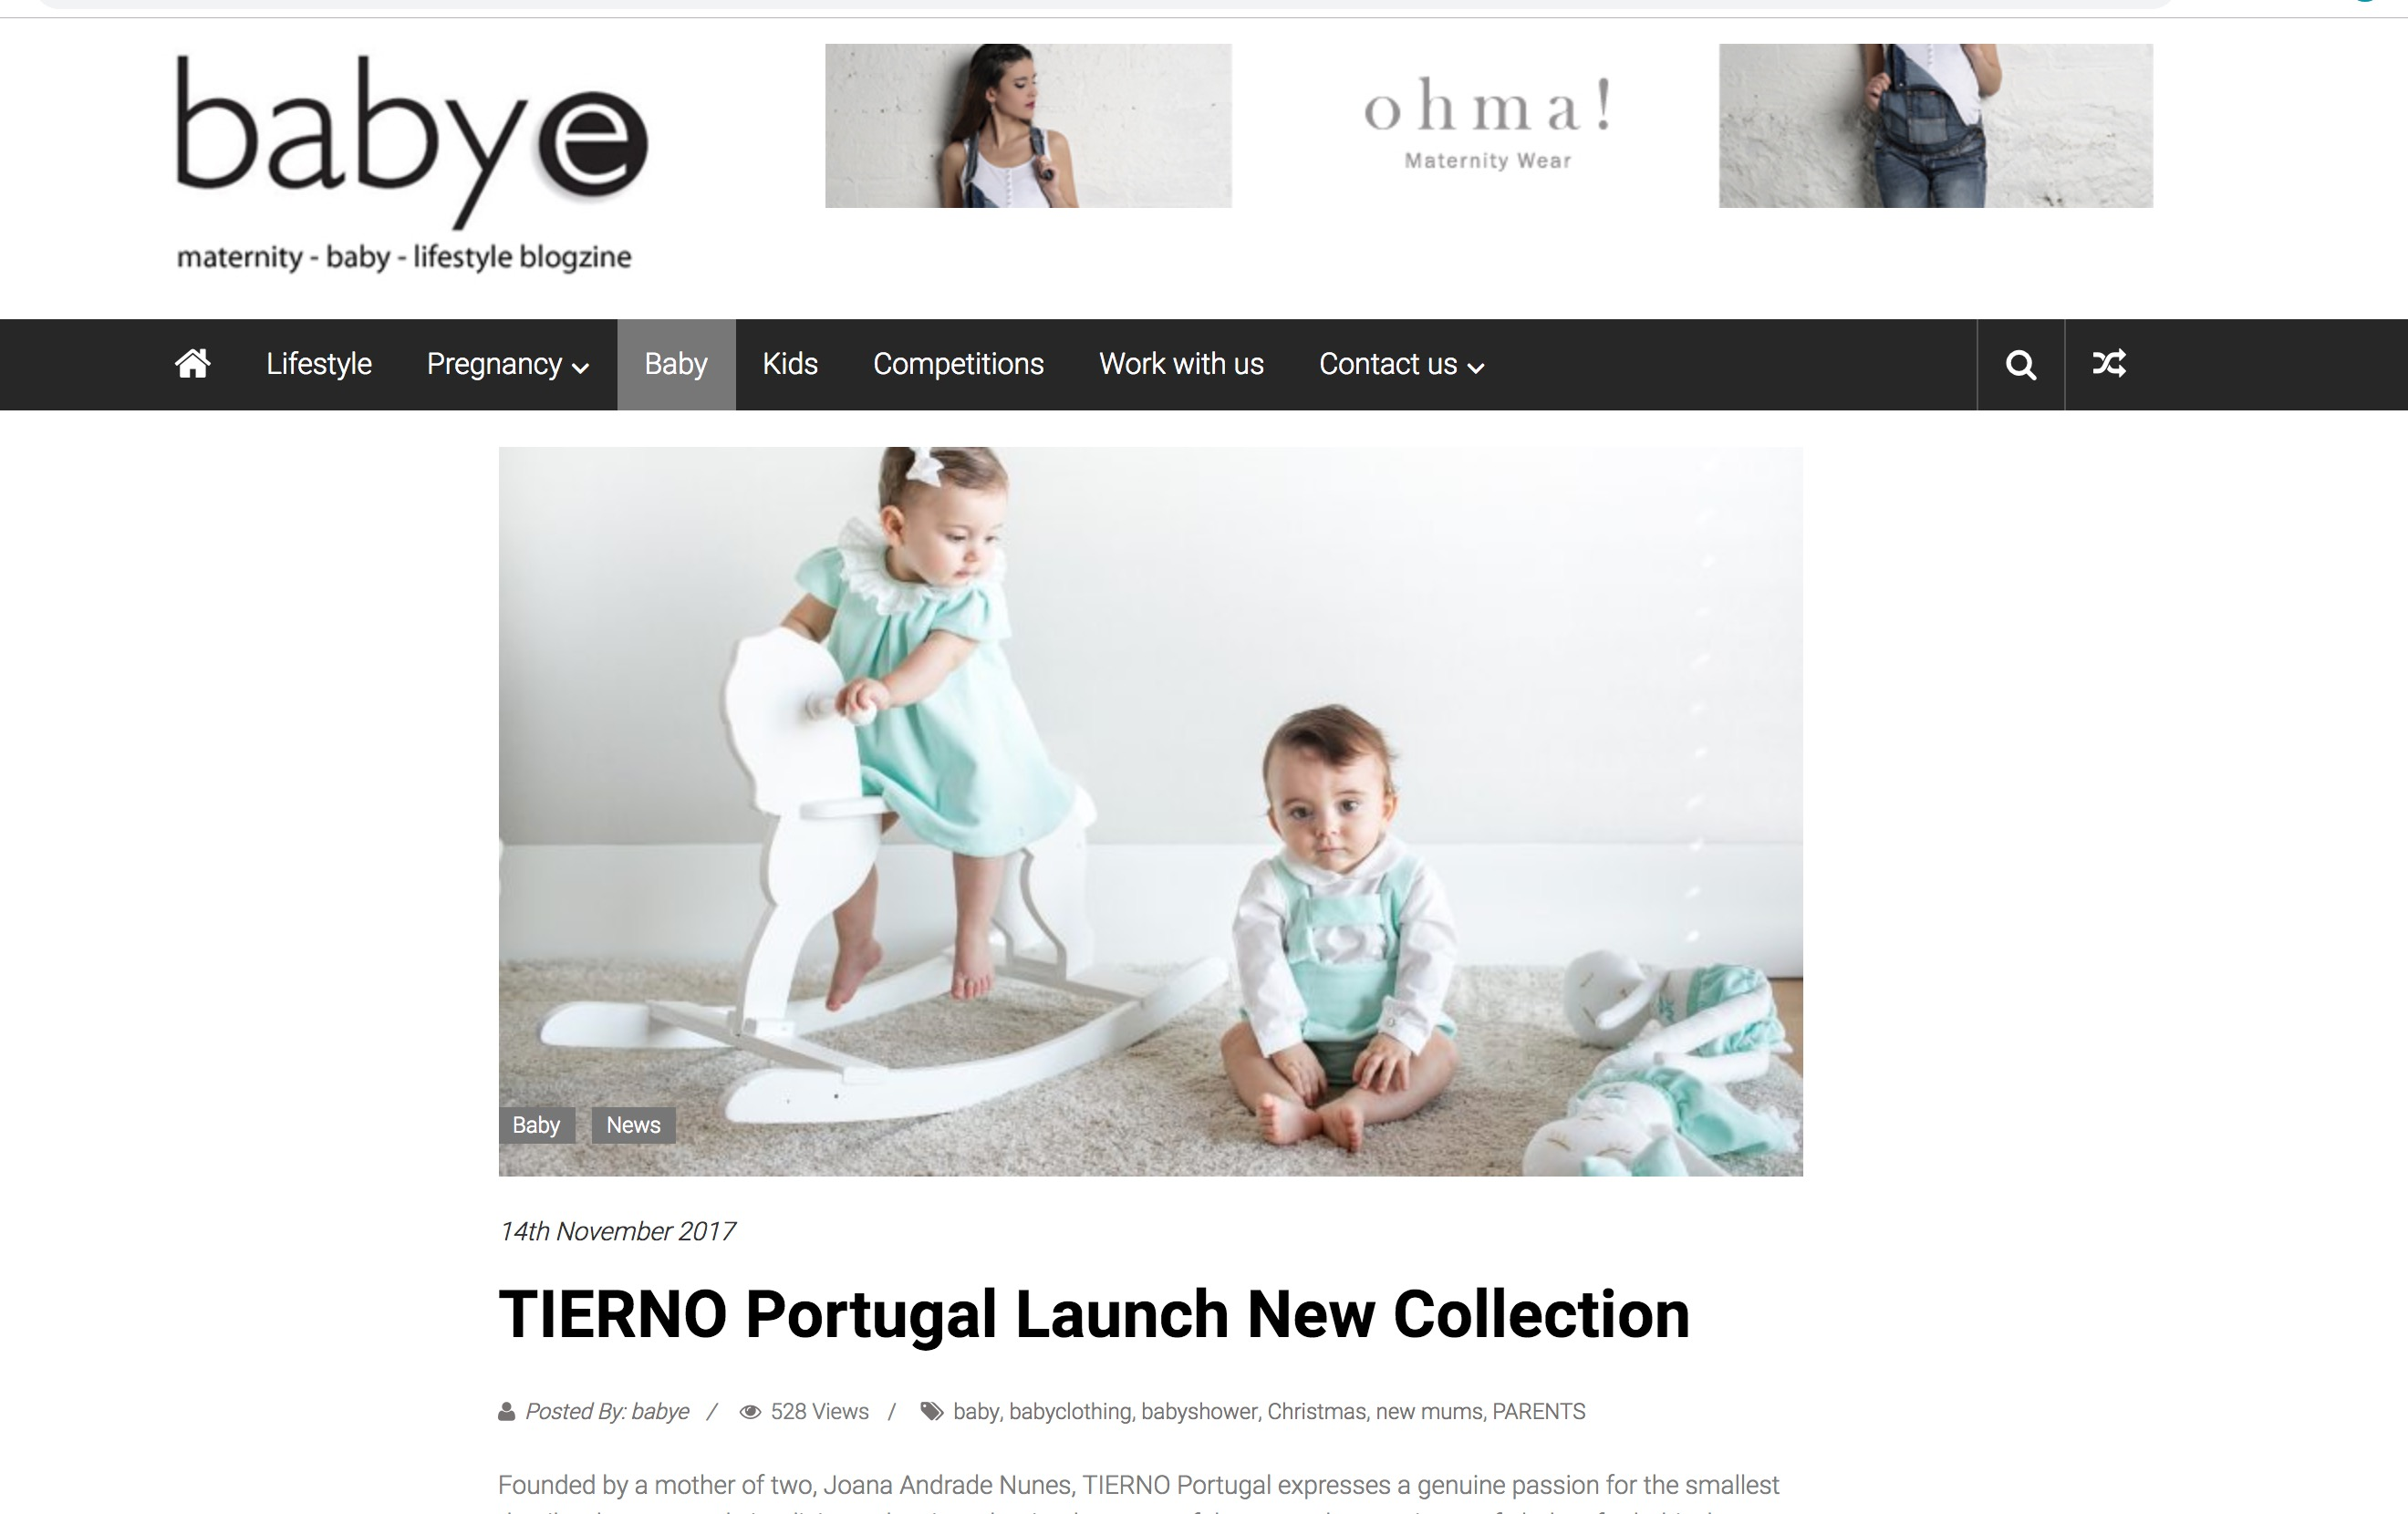 TIERNO LIMITED EDITION IN BABYE